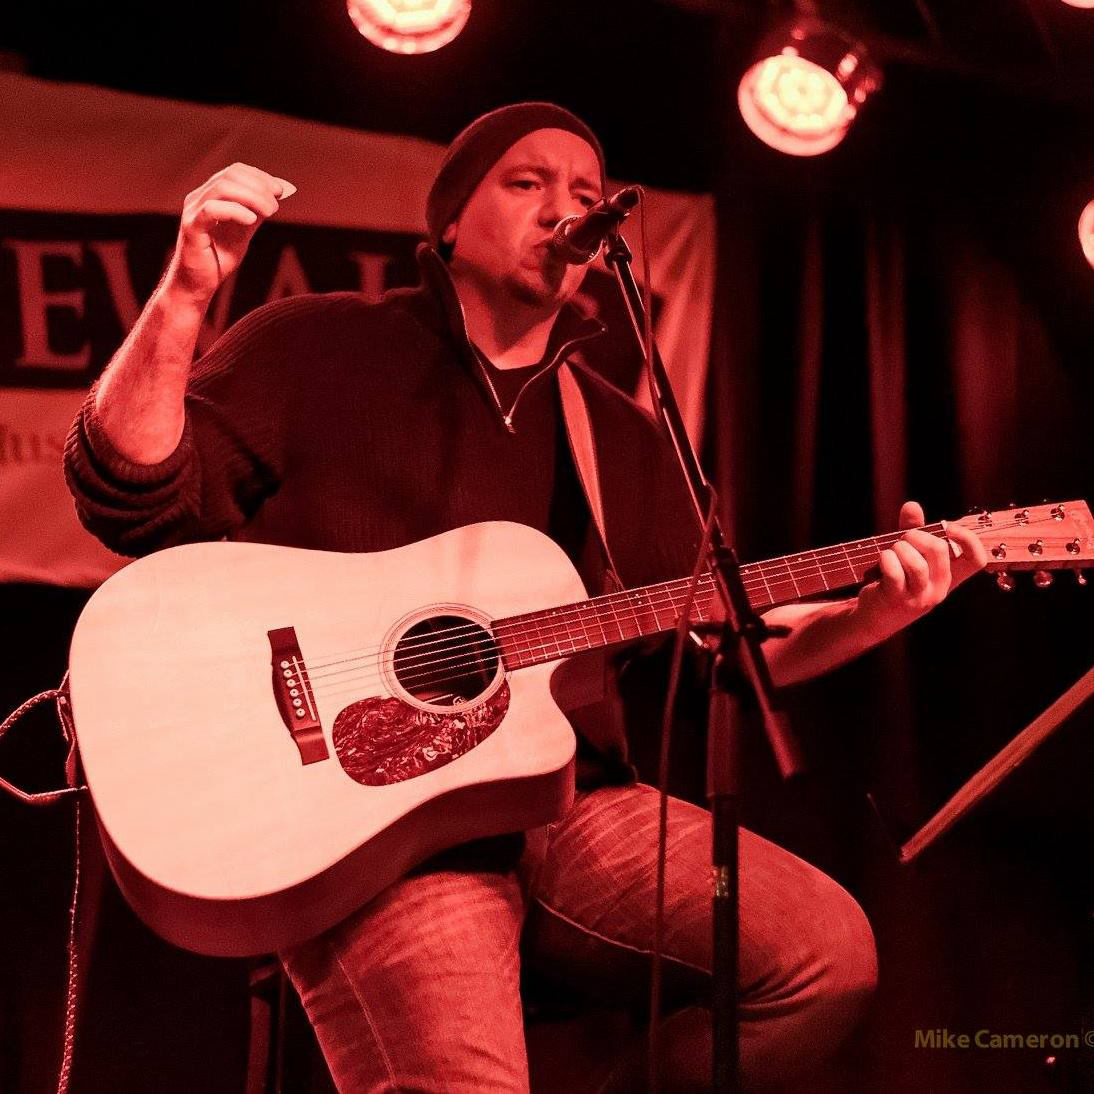 Carm Milioto - Carm has built his musical roots as a singer-songwriter and producer here in Hamilton, Ontario. You may know him as a soloist on local stages or as the front man for two well established Hamilton bands